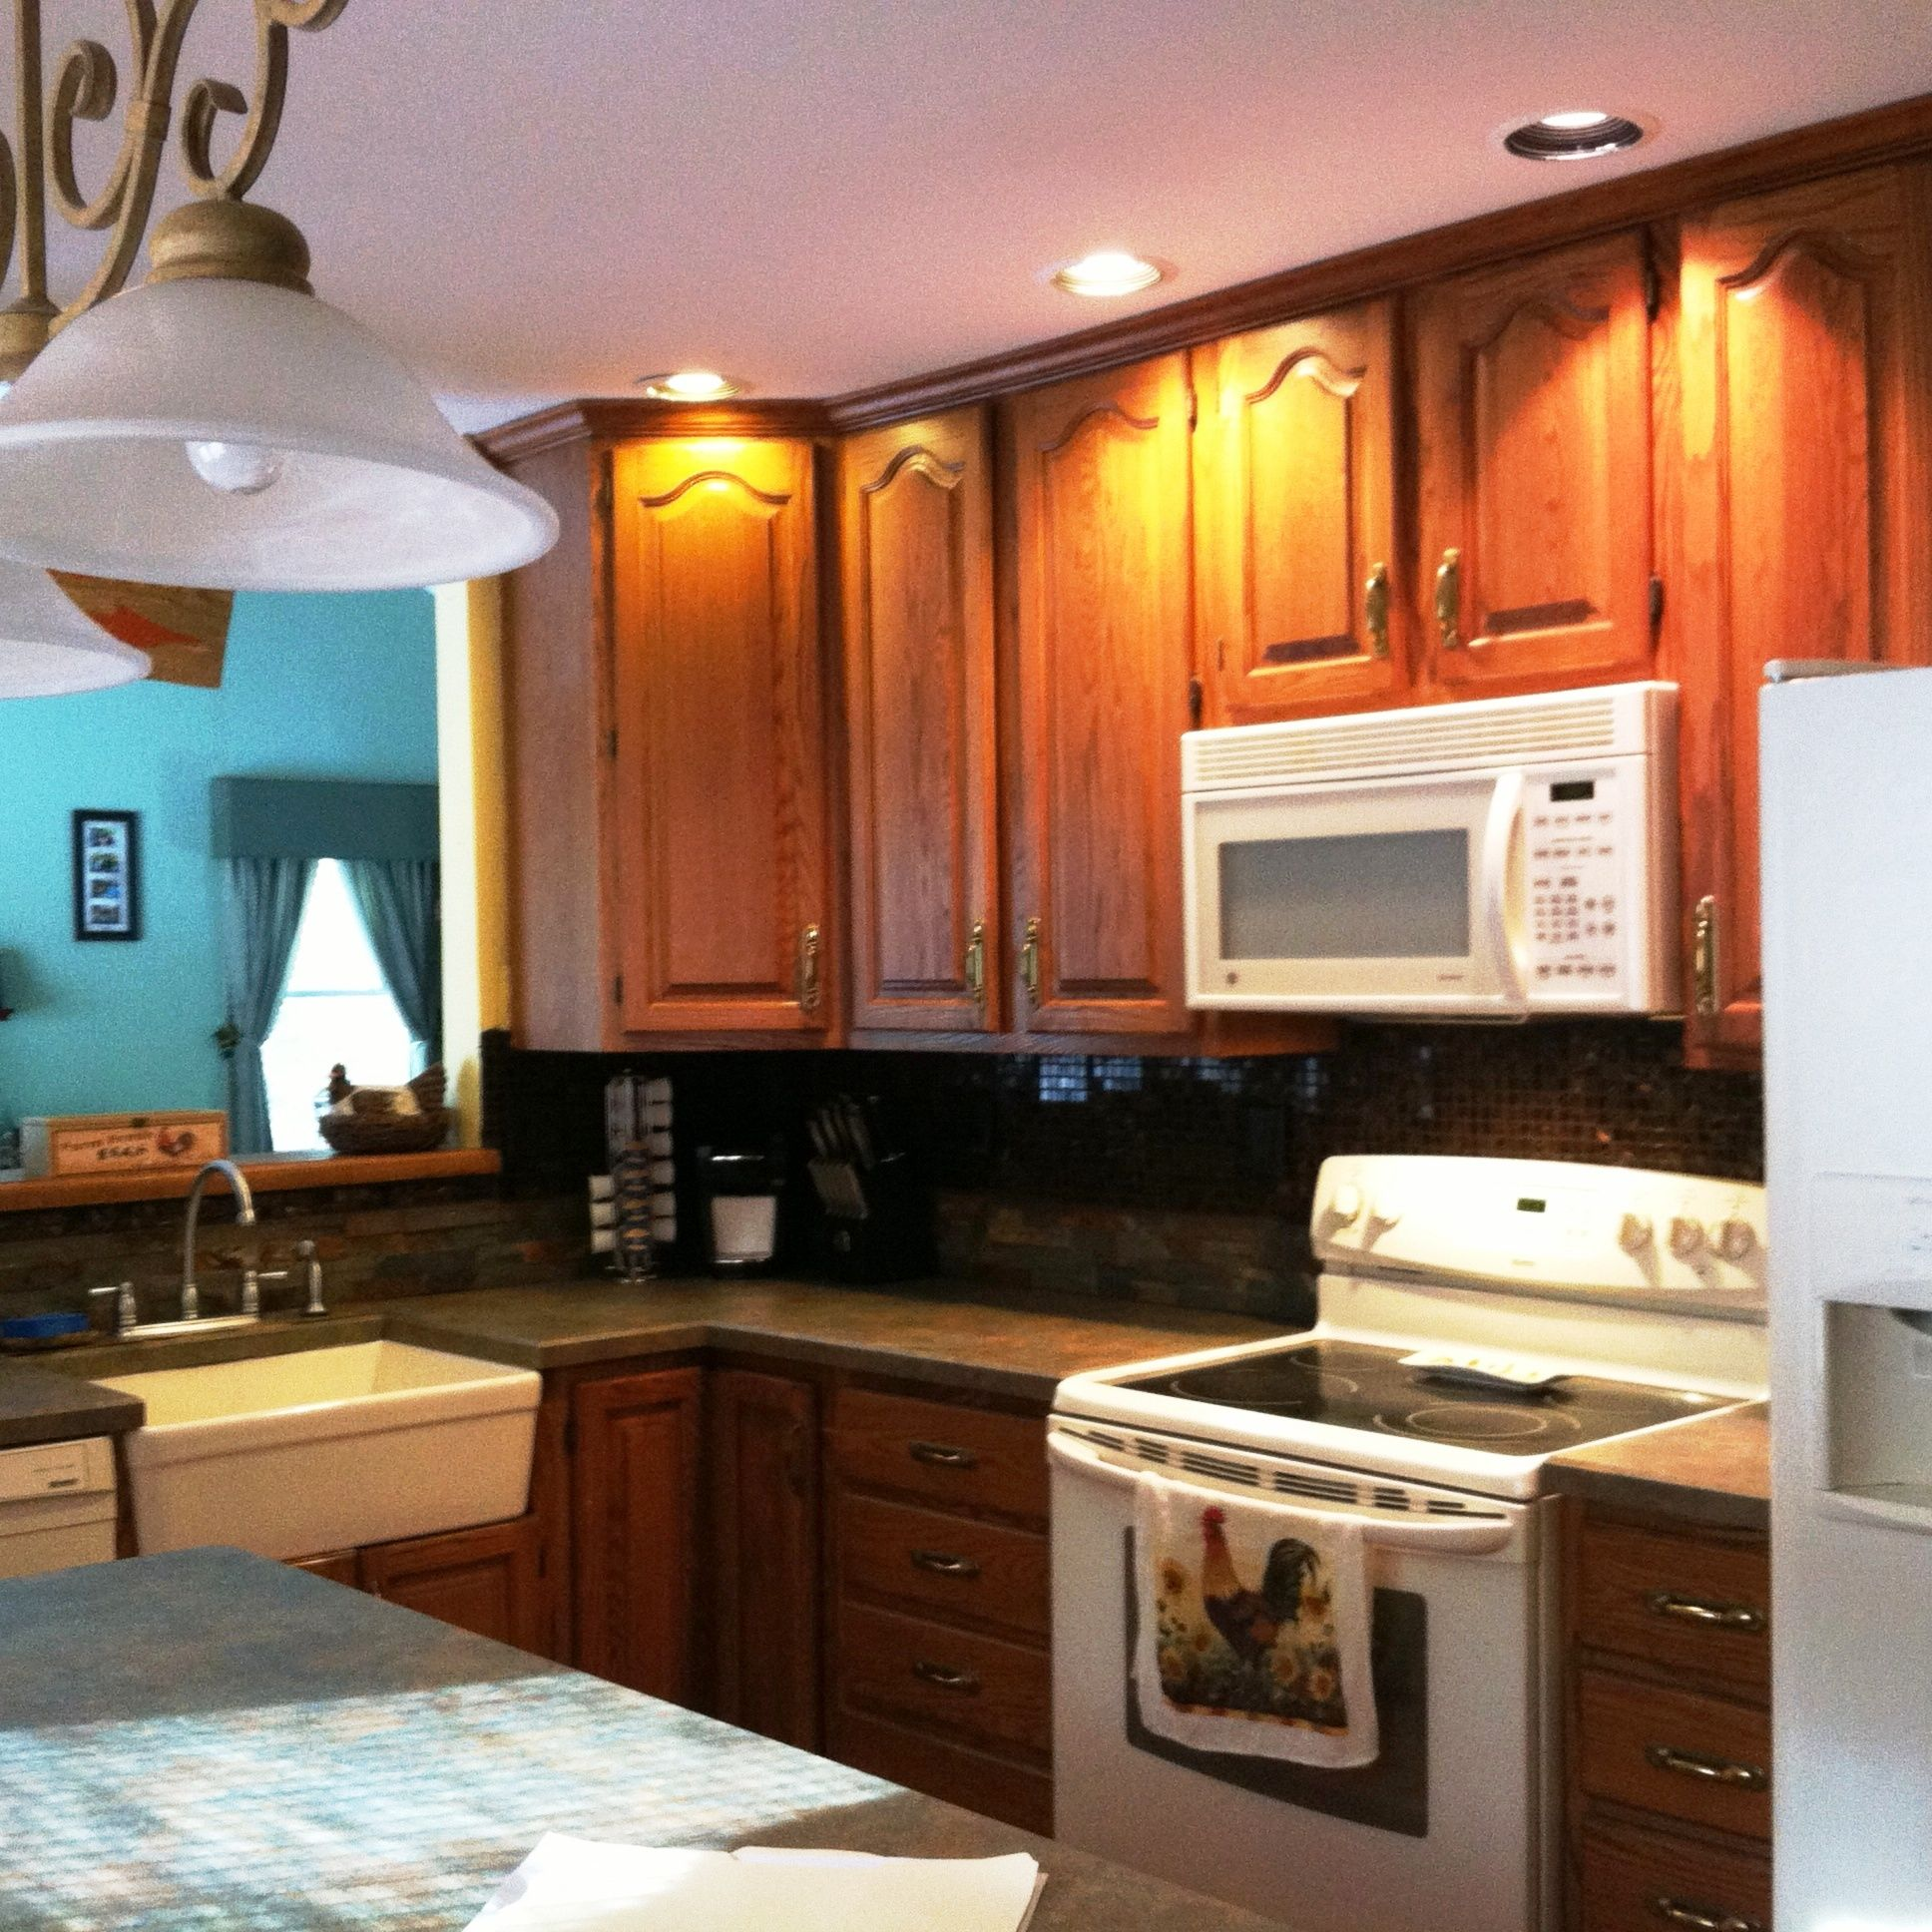 kitchen. updated appliances, plenty of cabinets, movable ...